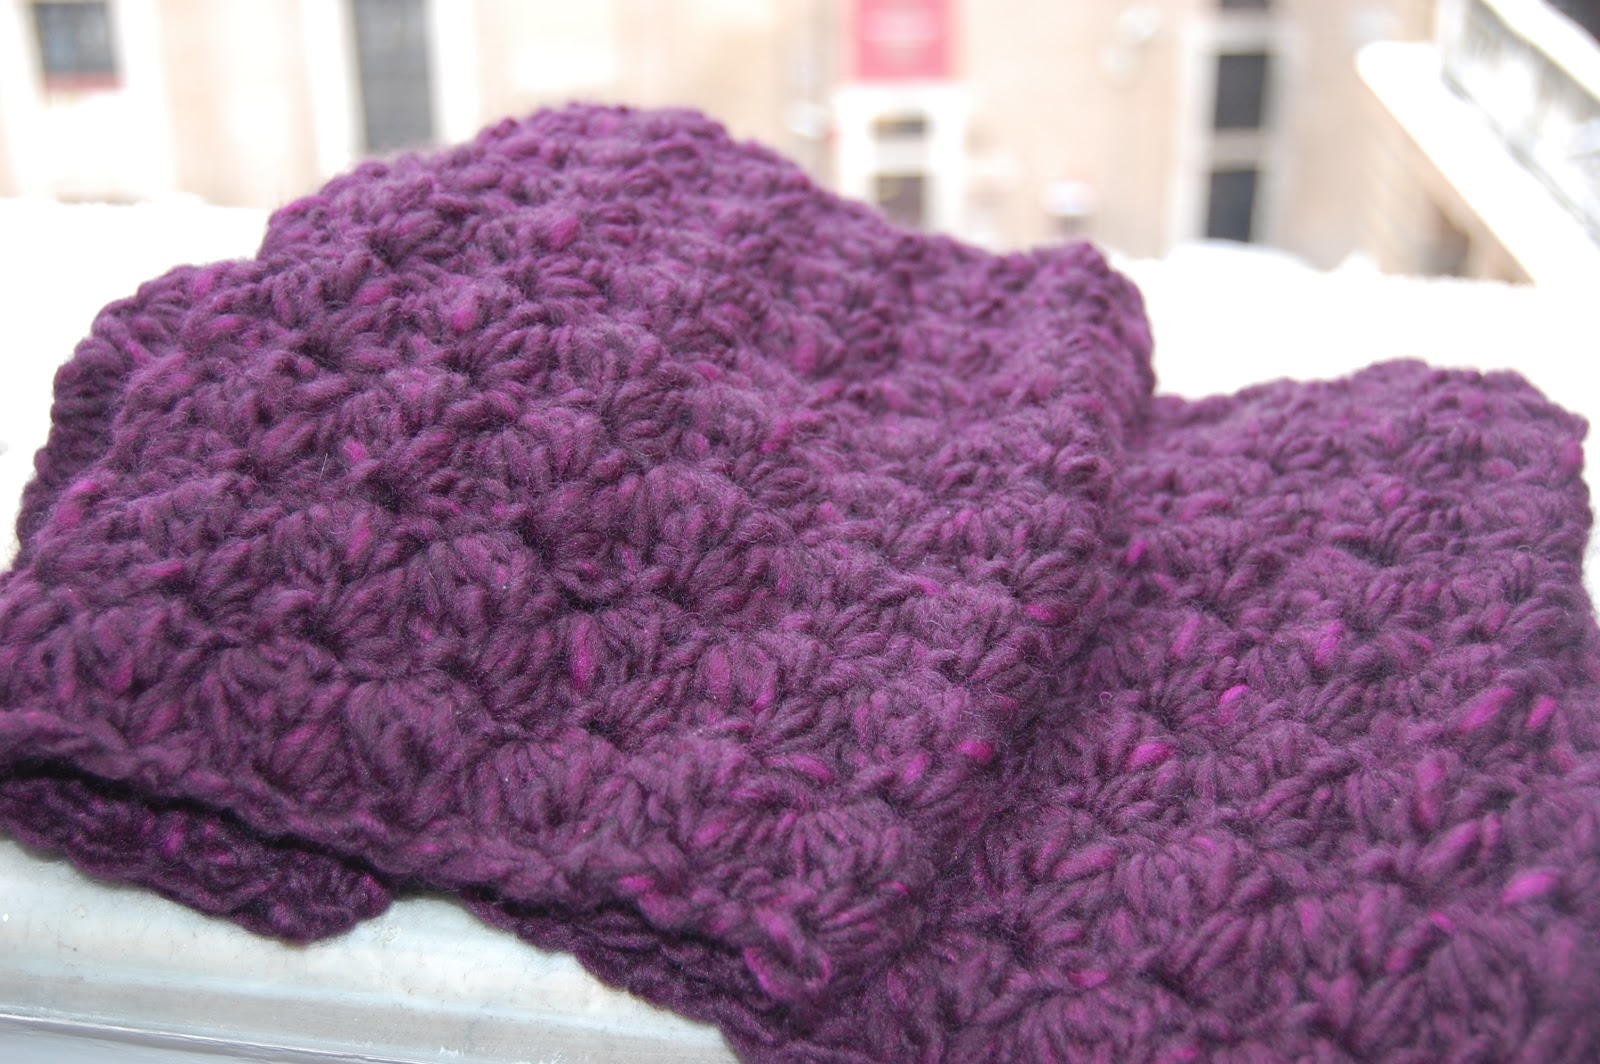 Crochet Shawl Patterns With Bulky Yarn : Bulky Purple Crochet Scarf What Do I Do?